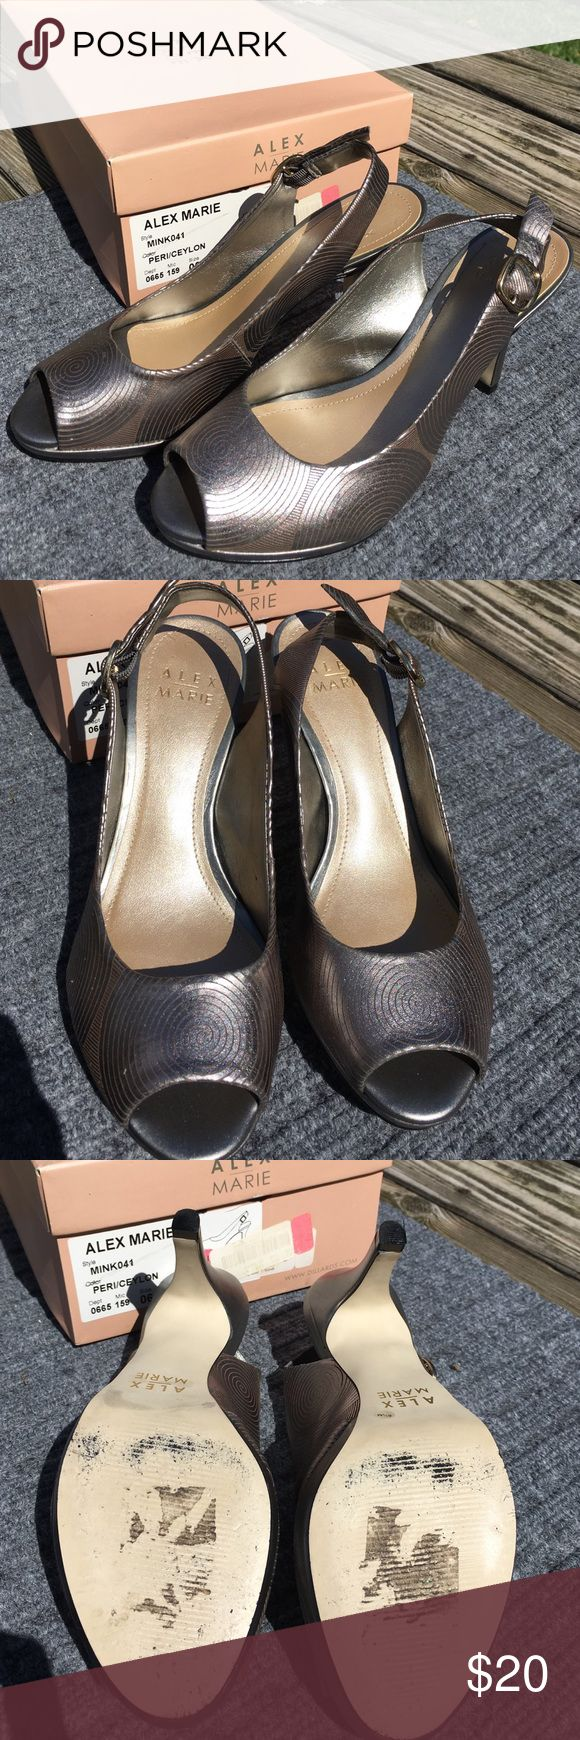 Alex Marie sling back open toe shoes 6.5 These are a pair of shoes from Alex Marie, size 6.5. They were only worn once and only have a few small marks near the toes but they are not too noticeable. They are silver with gold swirls. Alex Marie Shoes Heels